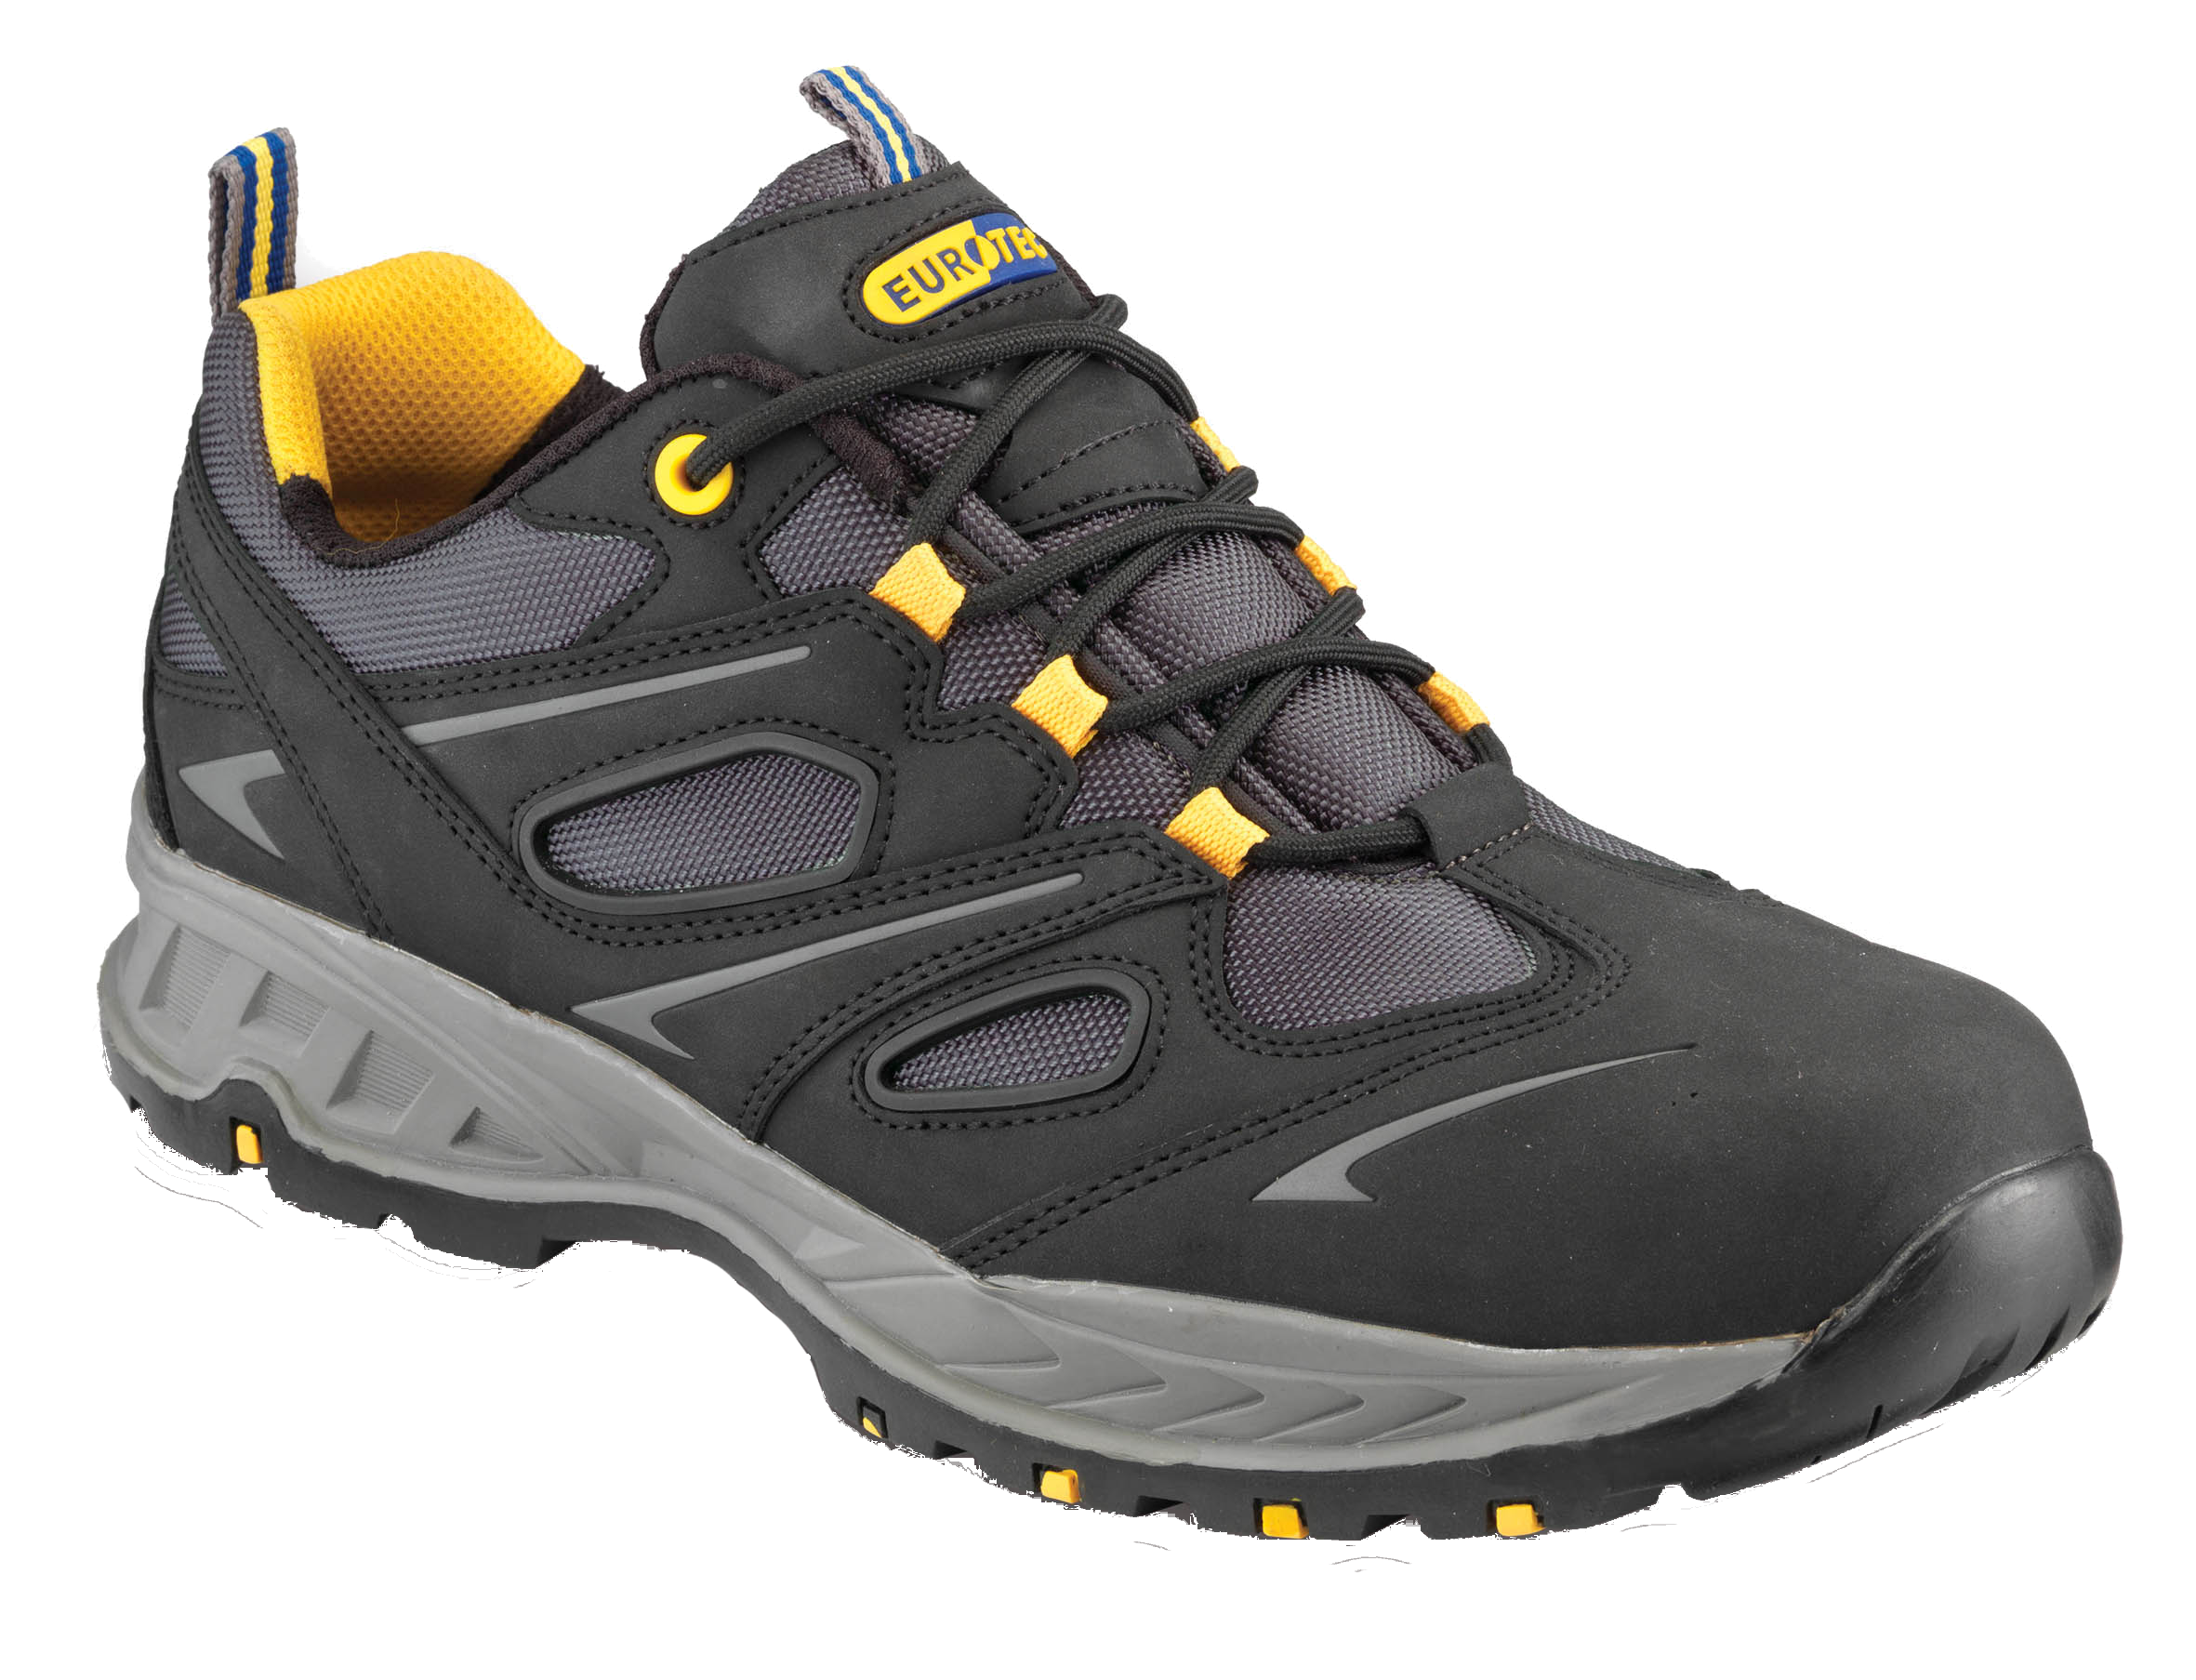 563a5a053 EUROTEC SAFETY TRAINER BLACK – Pro-Parts Workwear